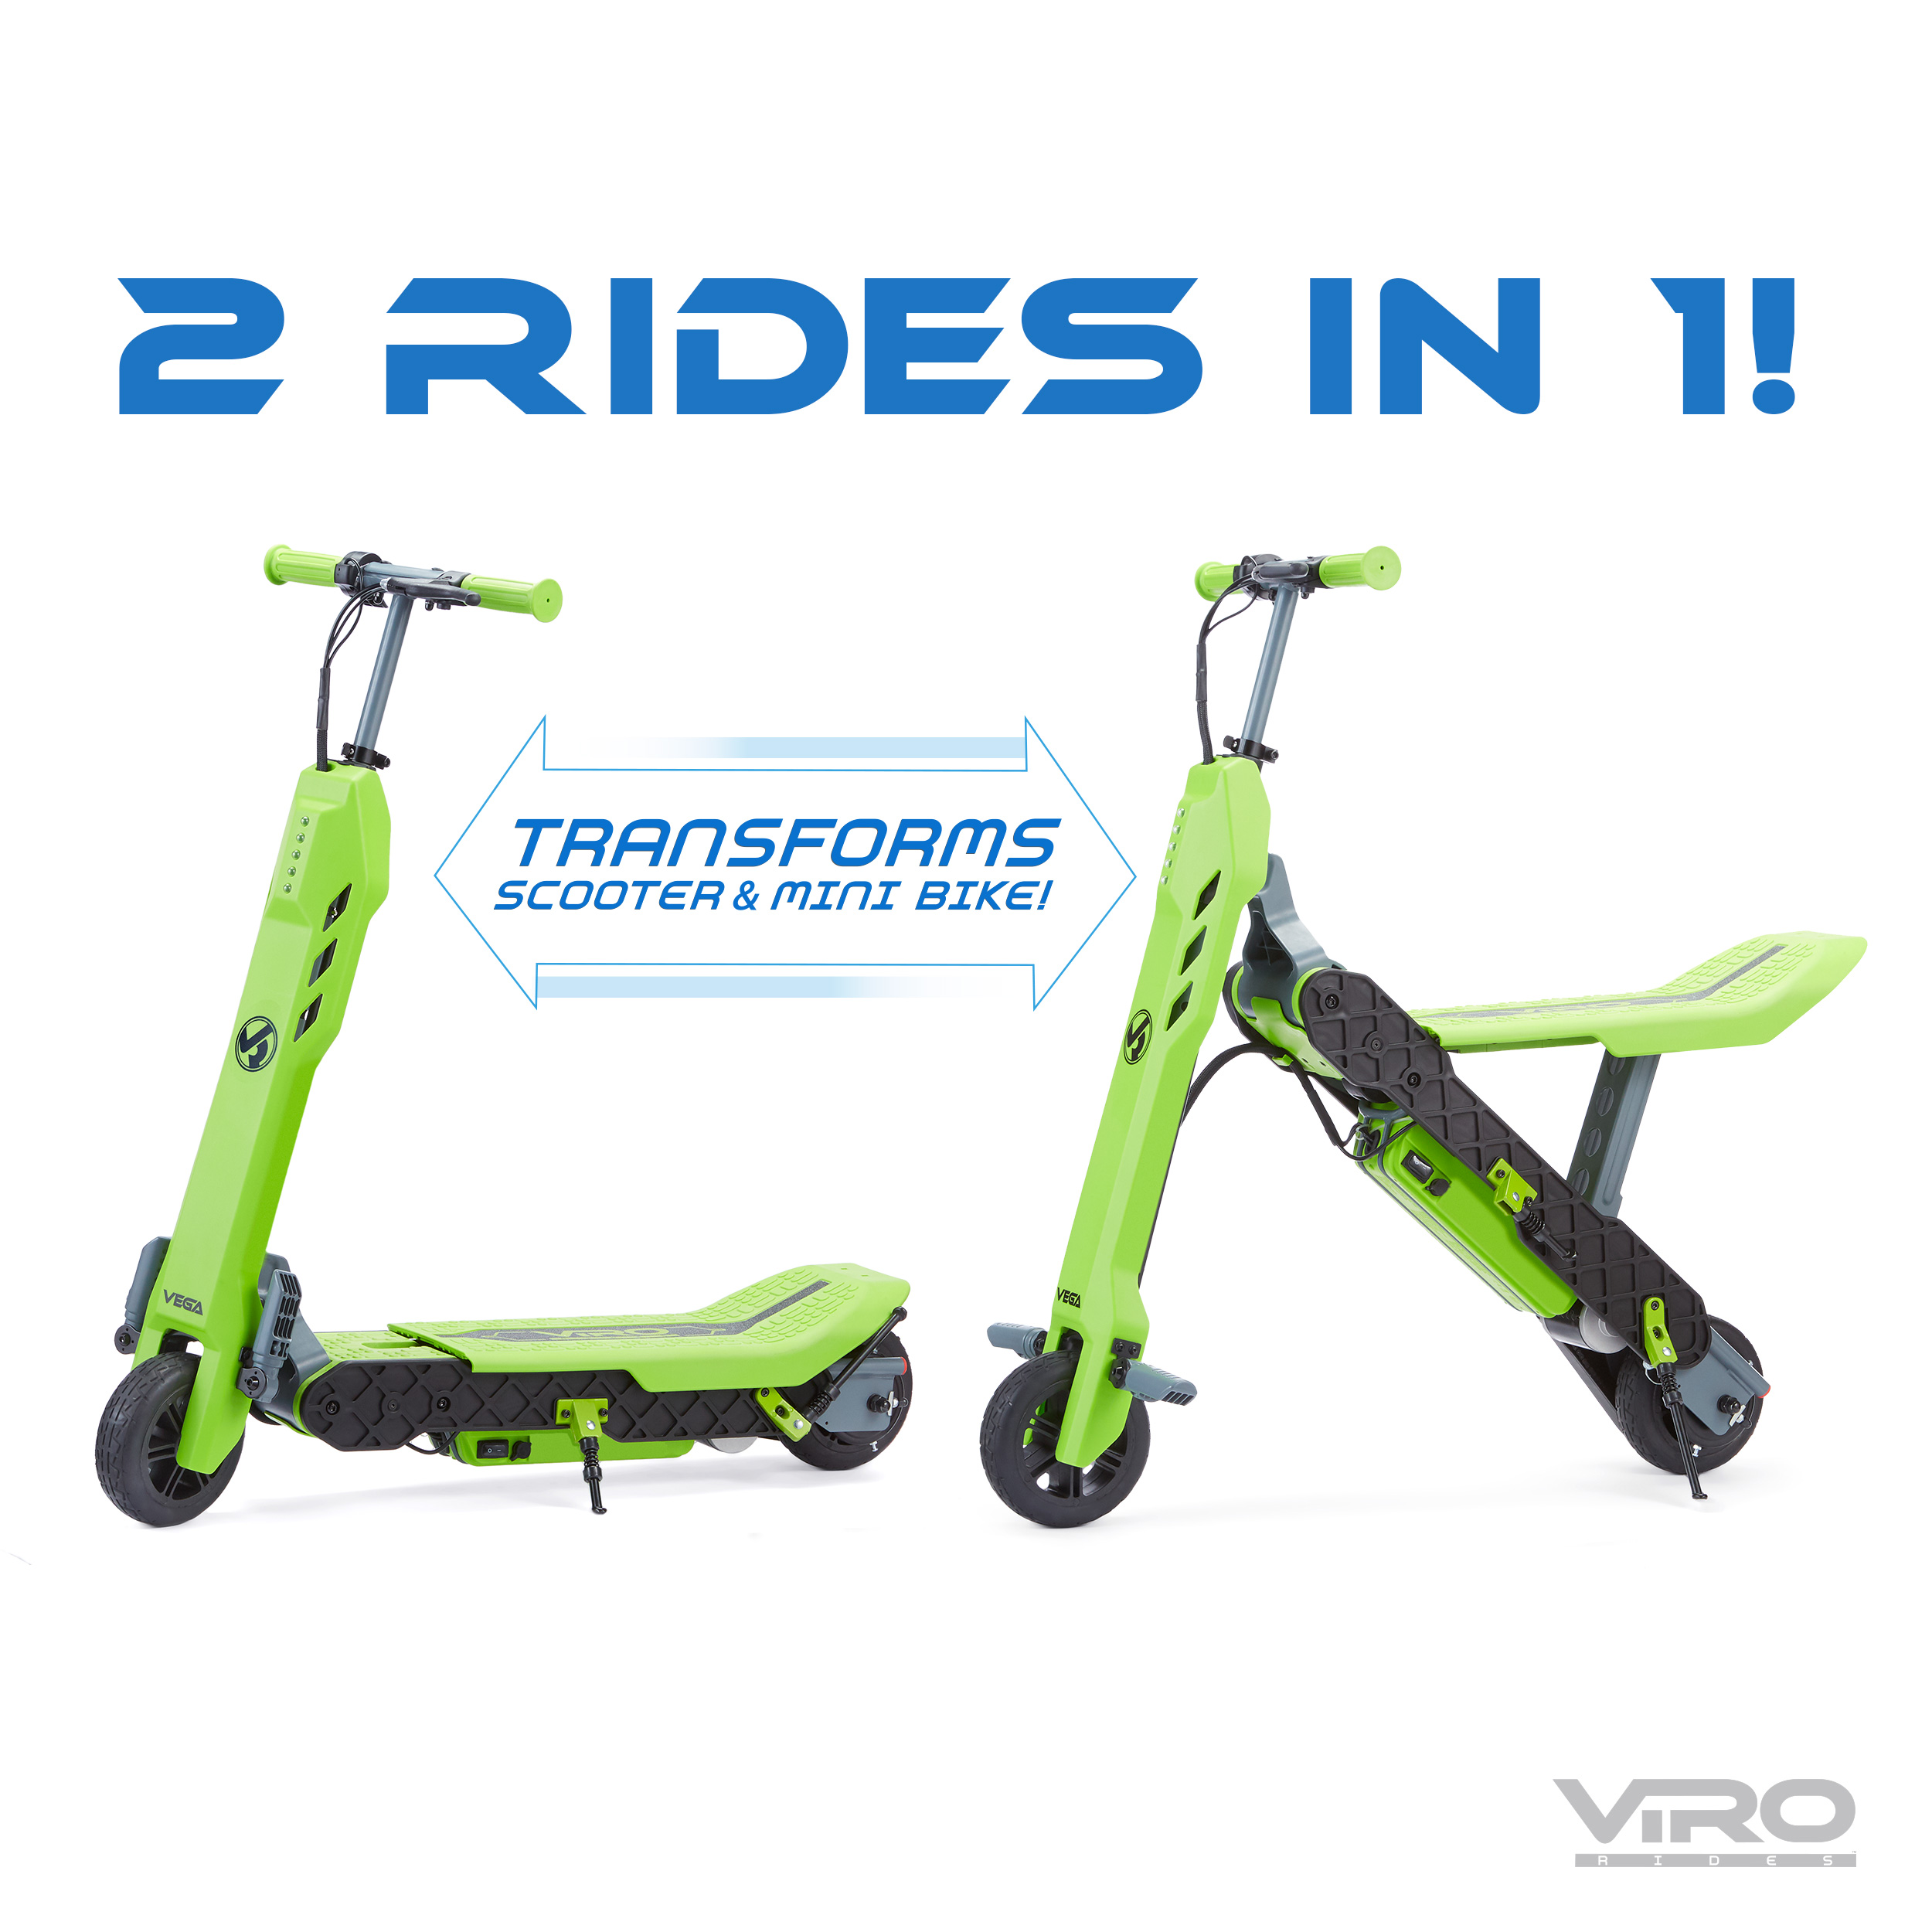 VIRO Rides Vega Transforming 2-in-1 Electric Scooter and Mini Bike